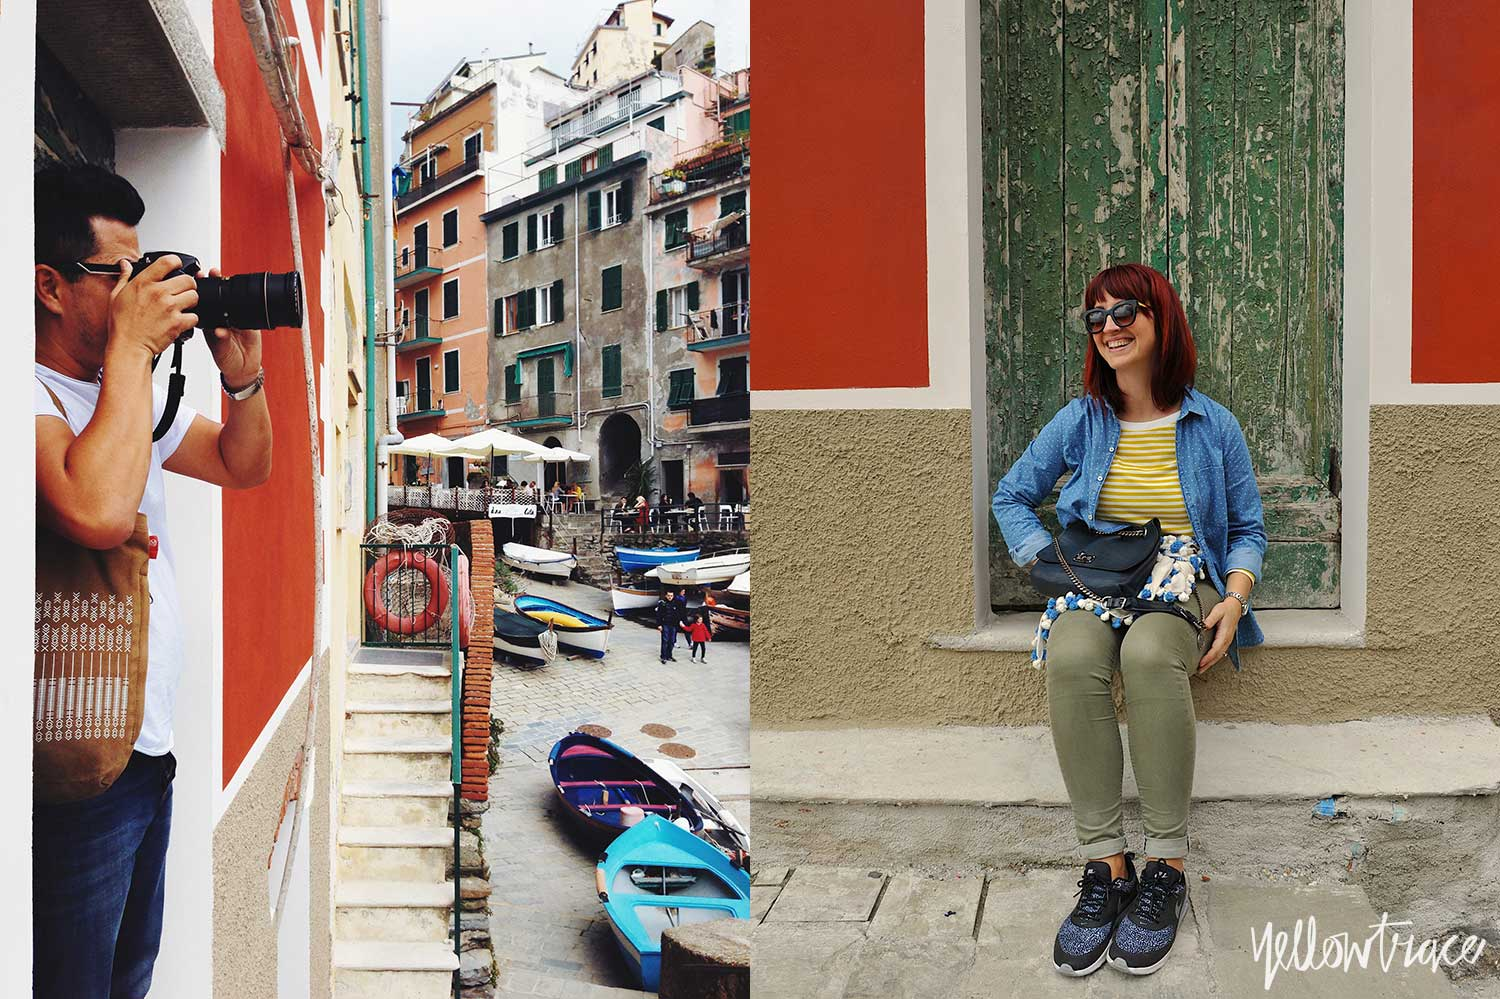 #YellowtraceTravels to Cinque Terre, Riomaggiore. Nick Hughes & Dana Tomic Hughes / Photo © Nick Hughes